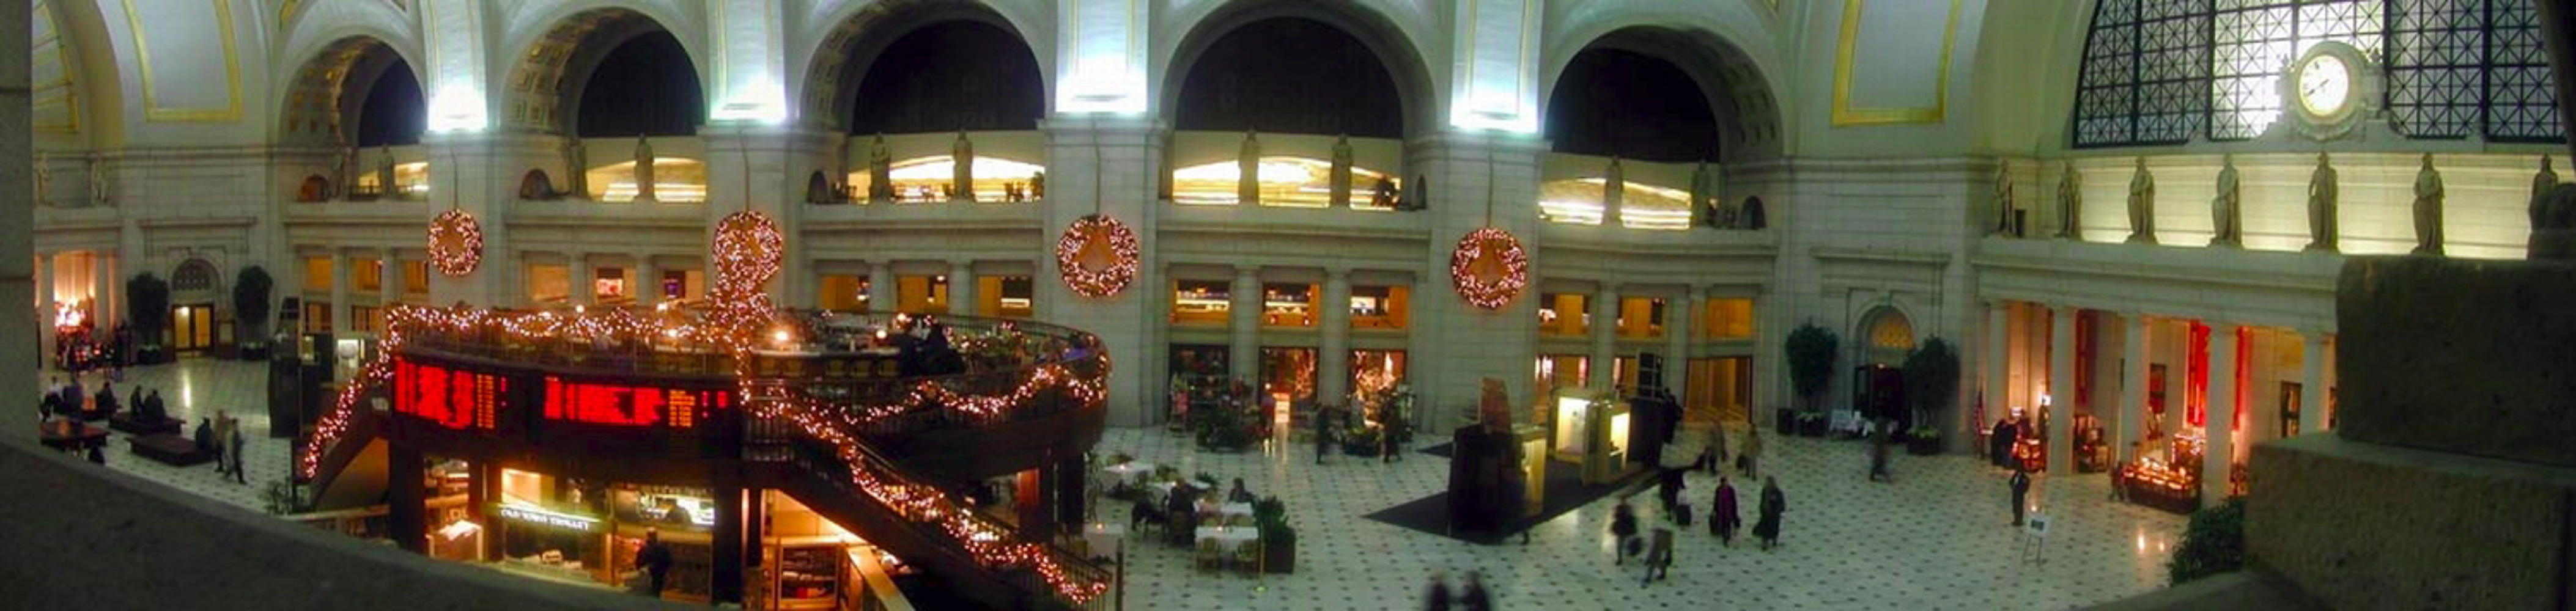 Washington DC, Union Station